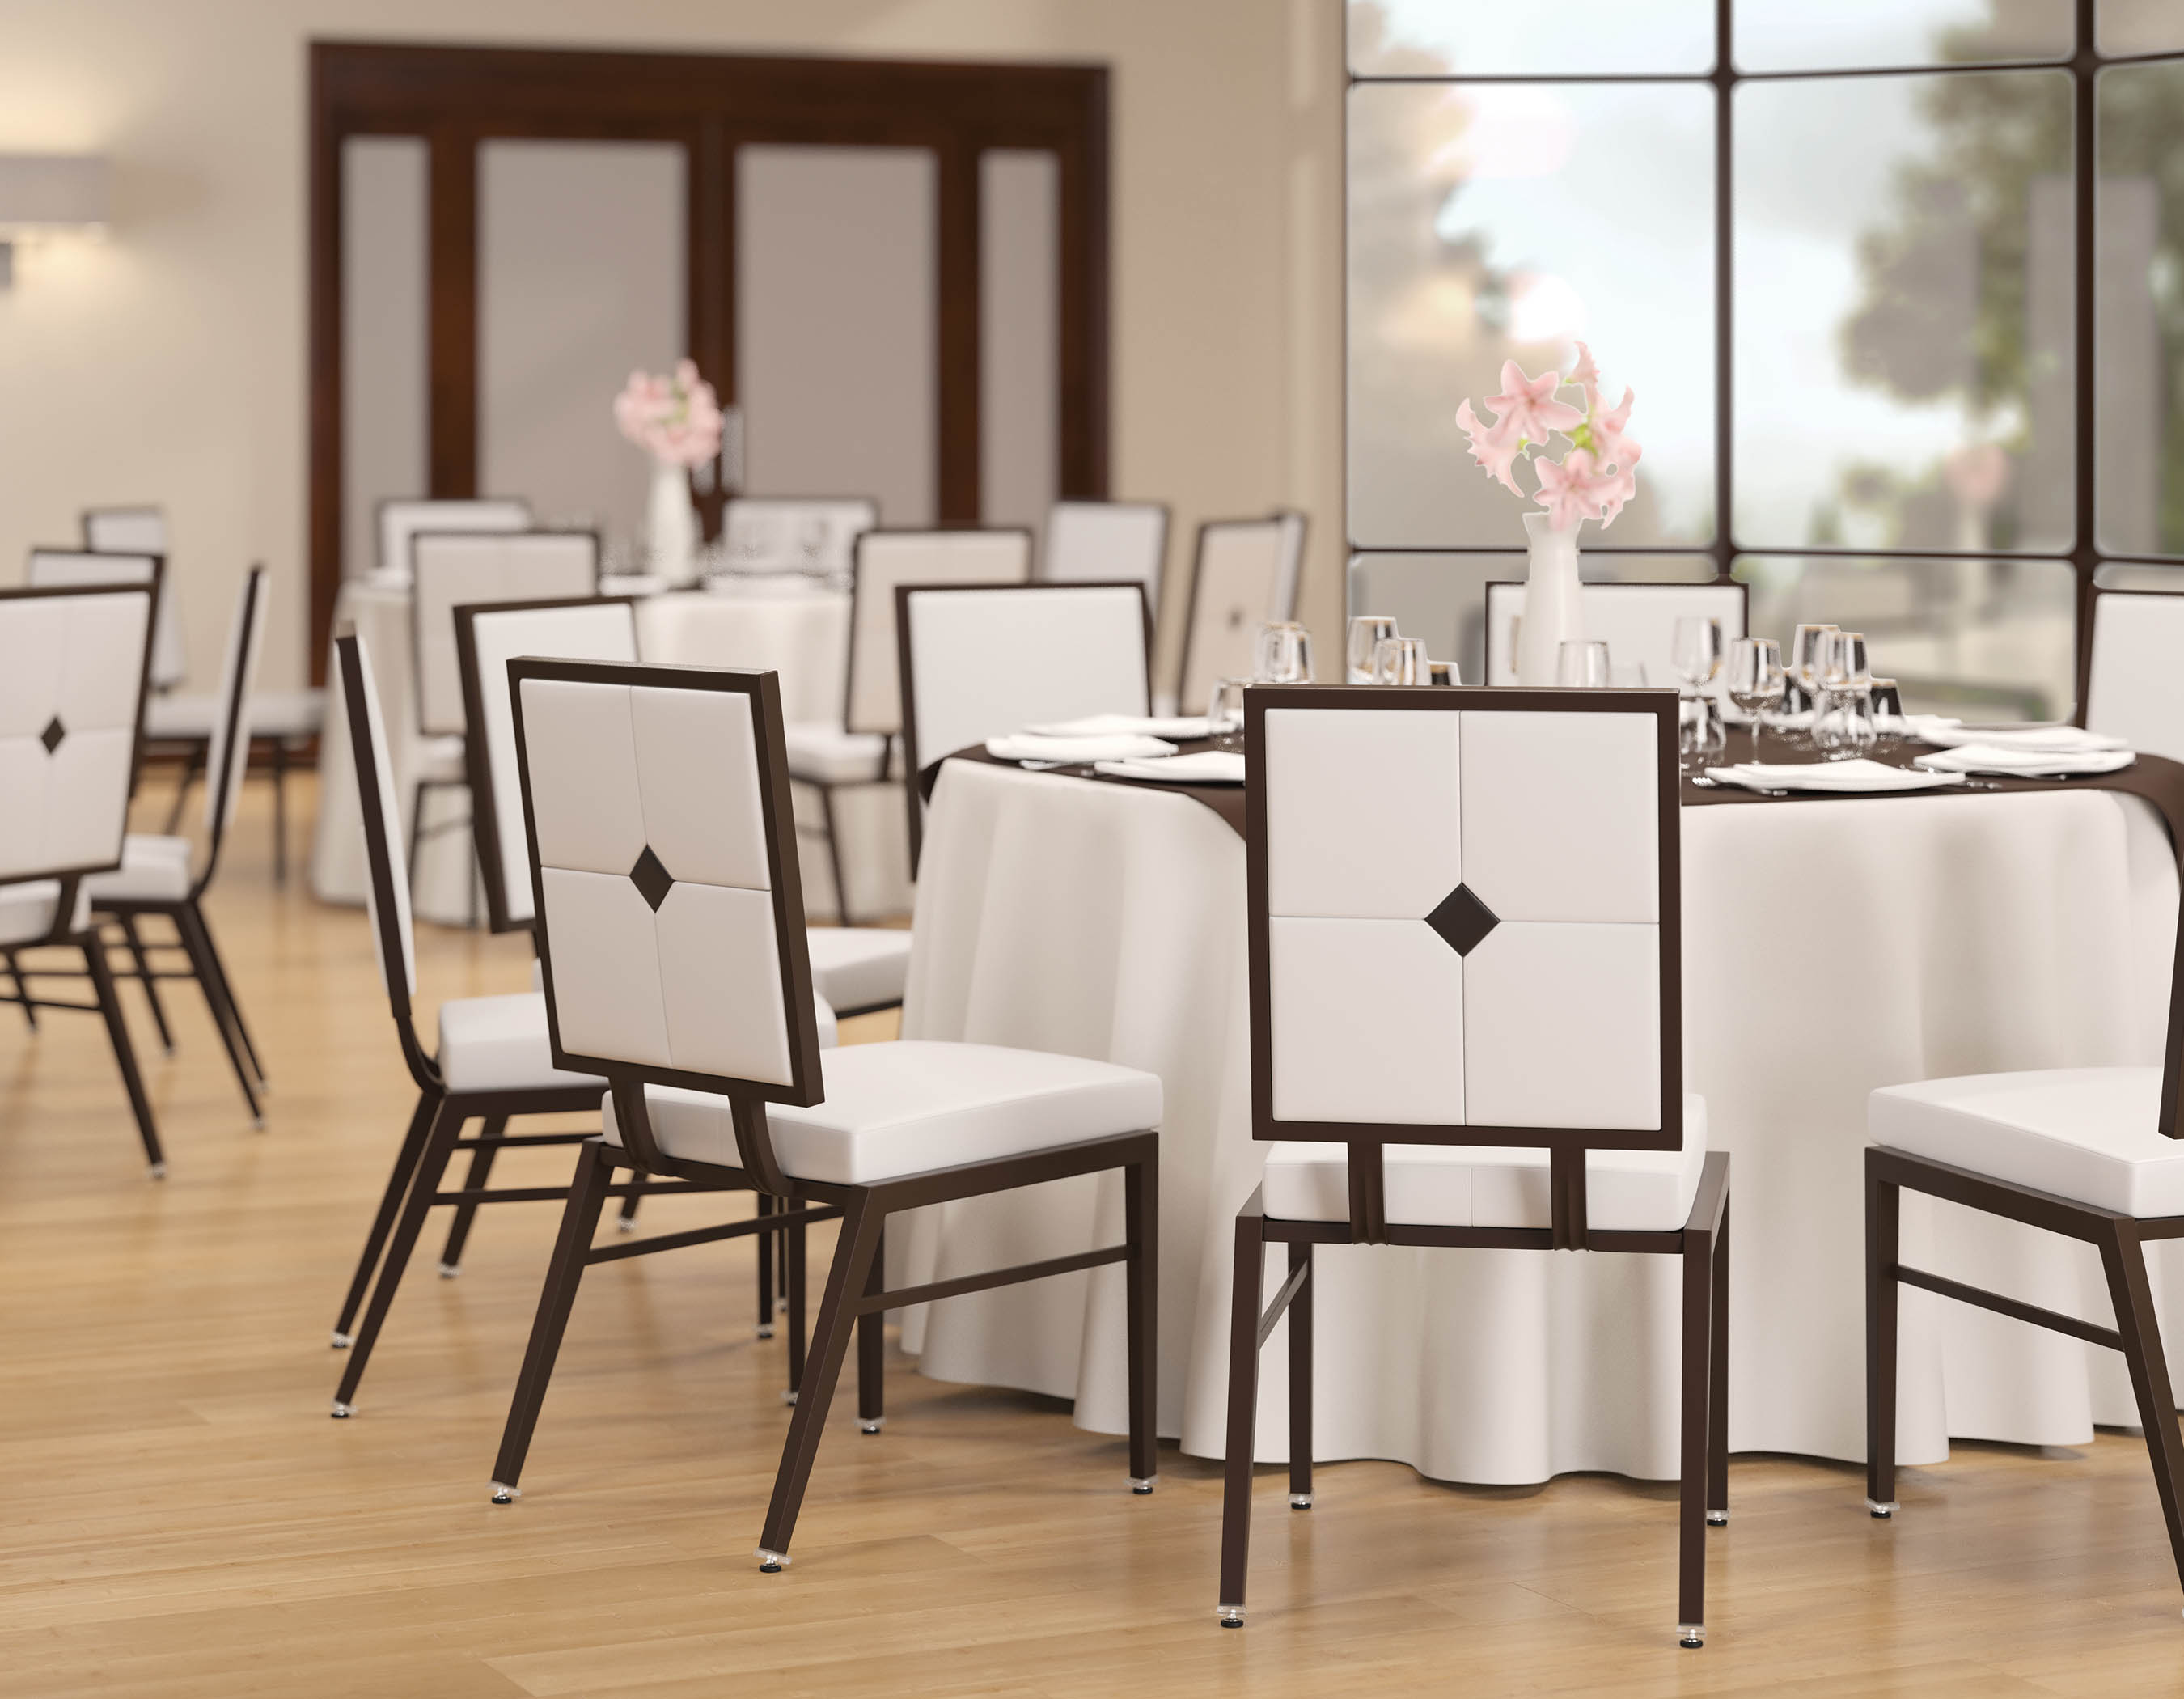 8215 aluminum banquet chair. Black Bedroom Furniture Sets. Home Design Ideas